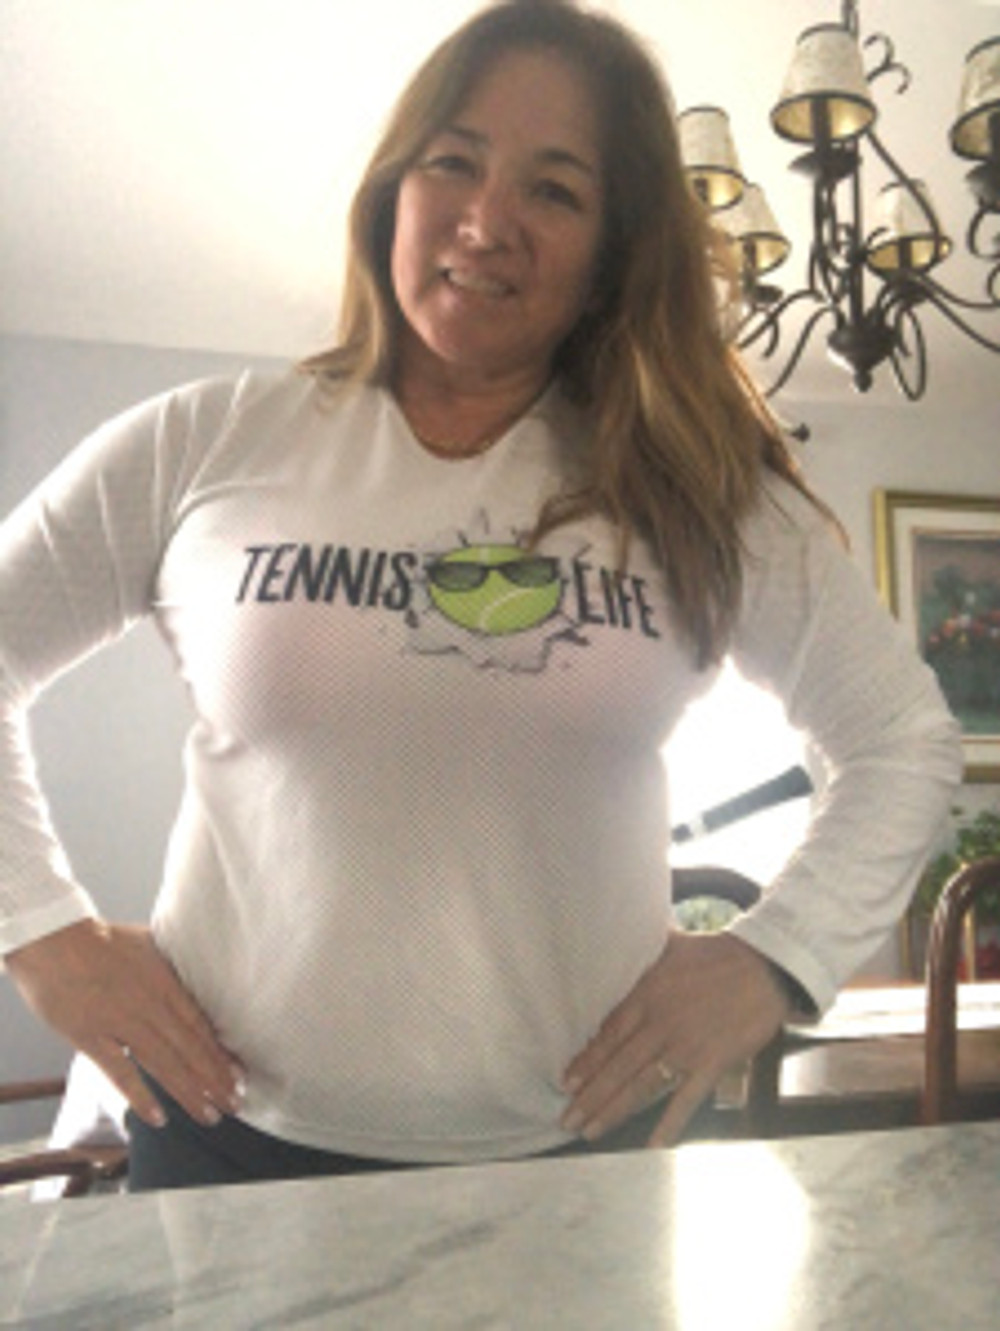 Tennis life shirt by Lacoa Sports